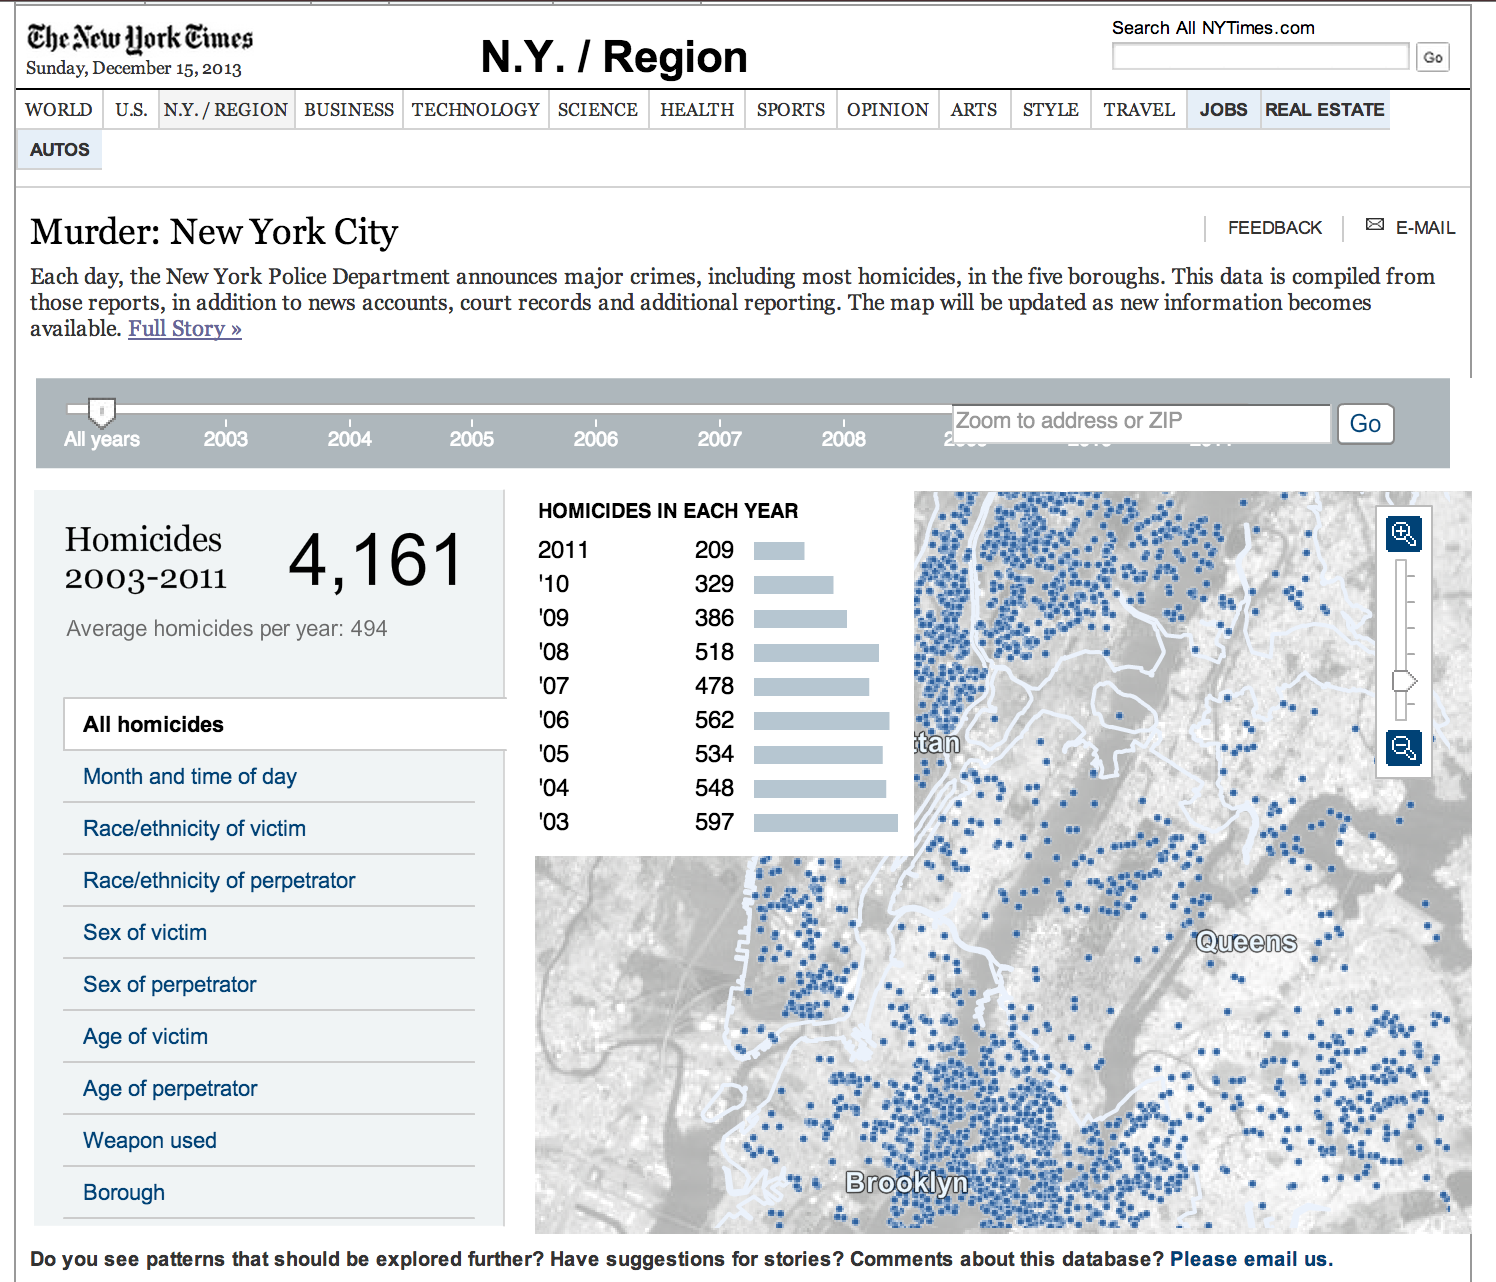 as far as i know nyc is the only large metropolitan city in the usa maybe the world that publishes its crime data like this in a way for citizens